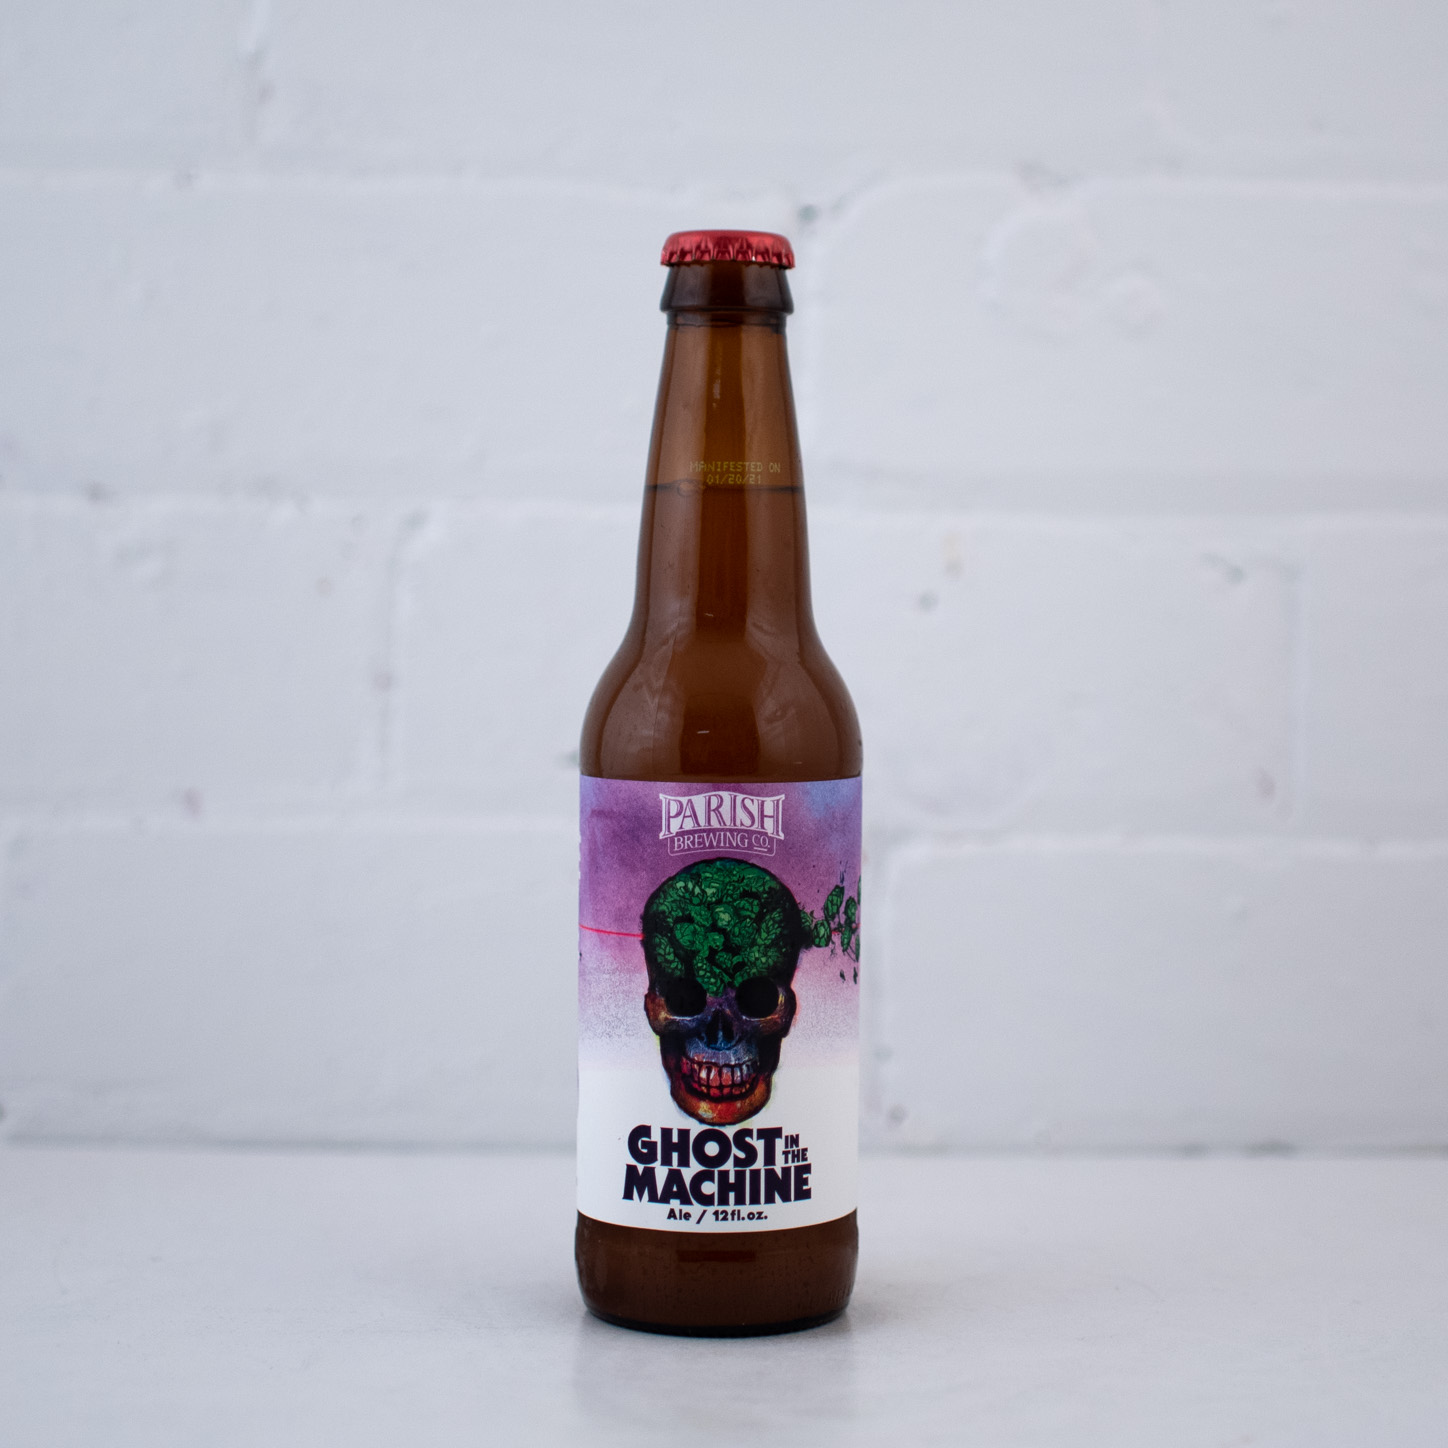 Parish-Ghost in the Machine 355ml